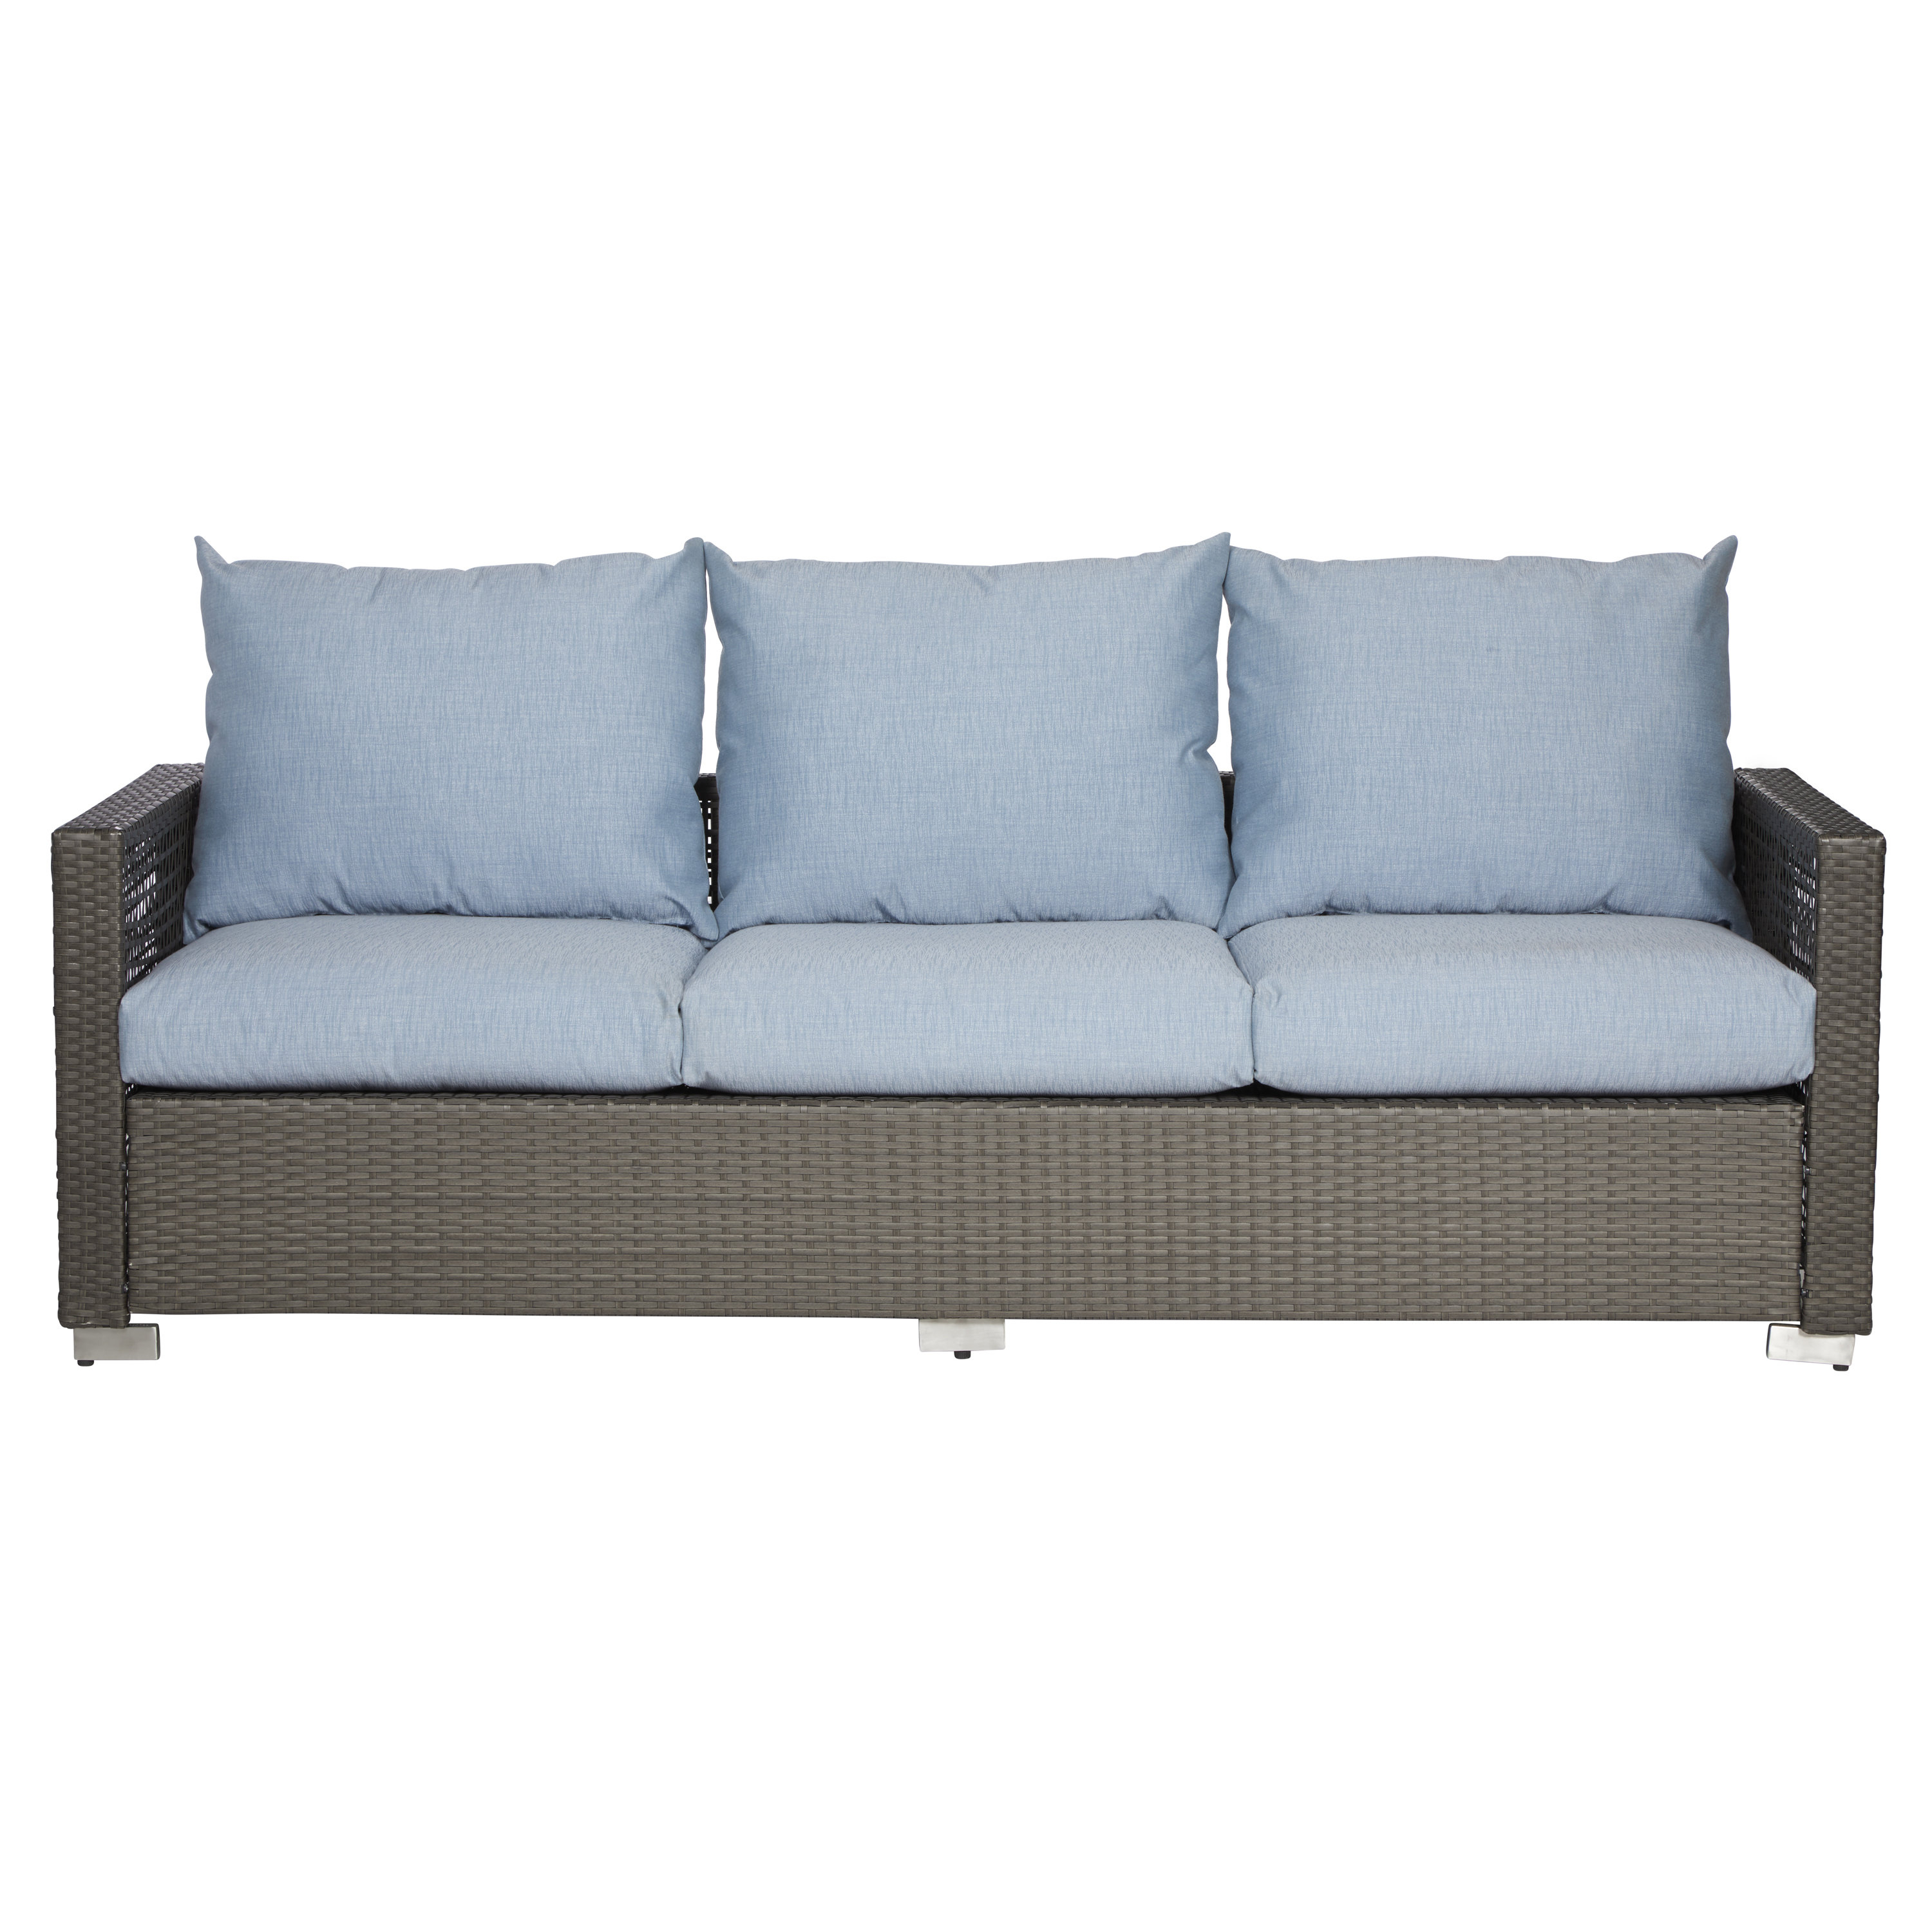 Ivy Bronx Mcmanis Patio Sofa With Cushions Intended For Well Liked Loggins Patio Sofas With Cushions (View 6 of 20)